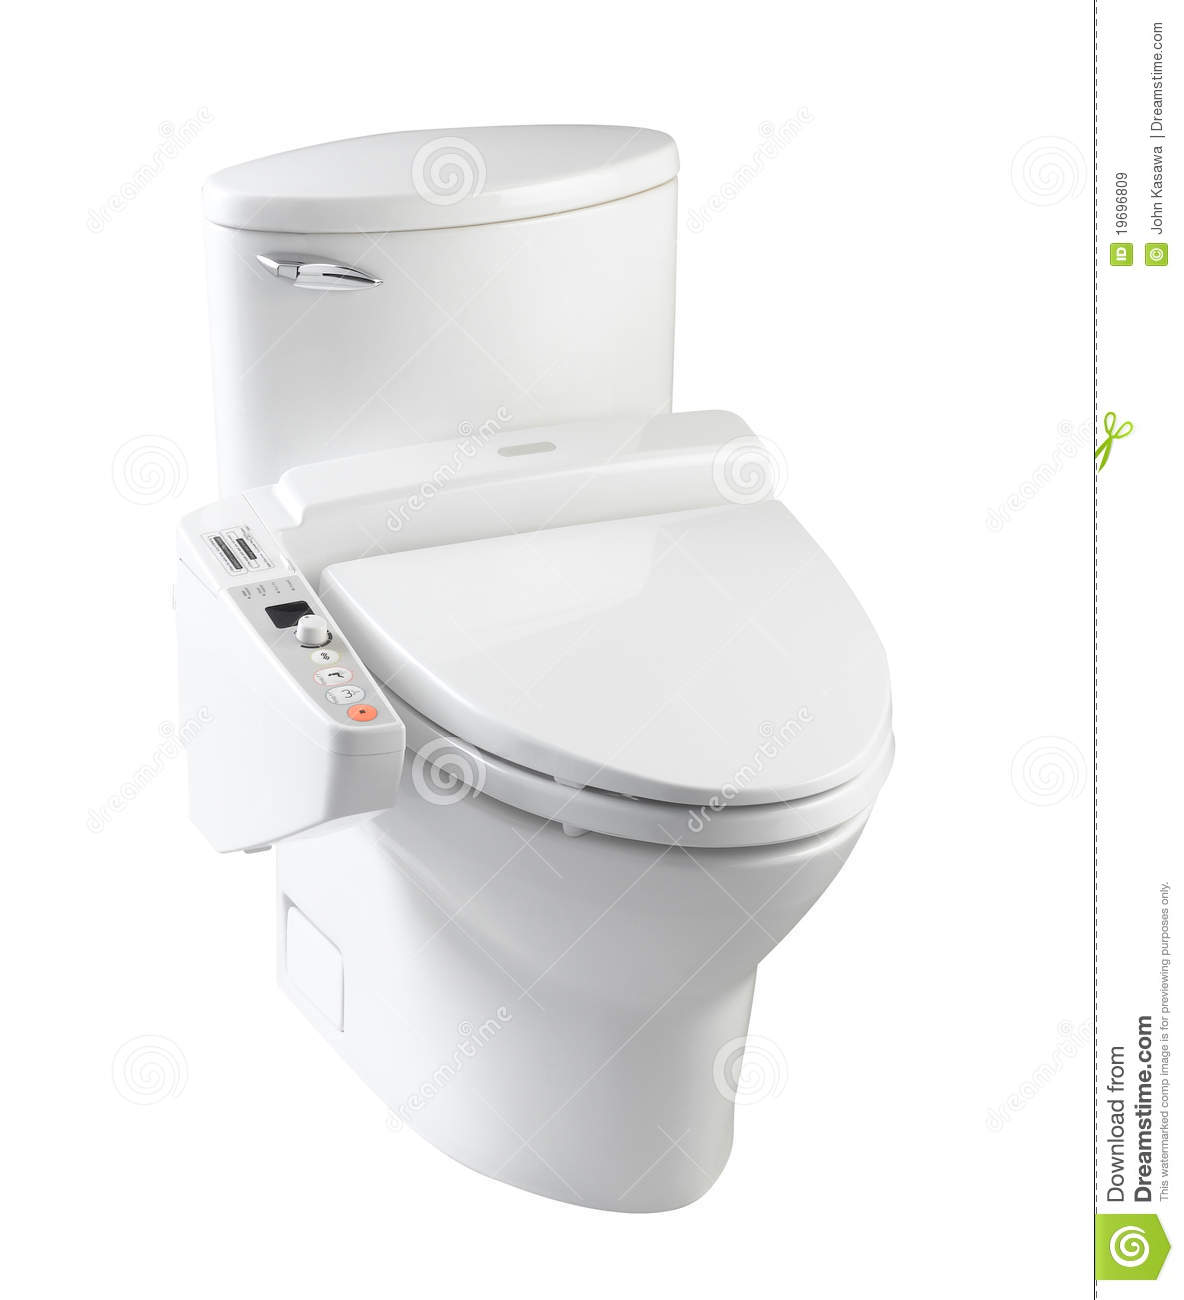 Modern Design Of Toilet Bowl Isolated Stock Image Image